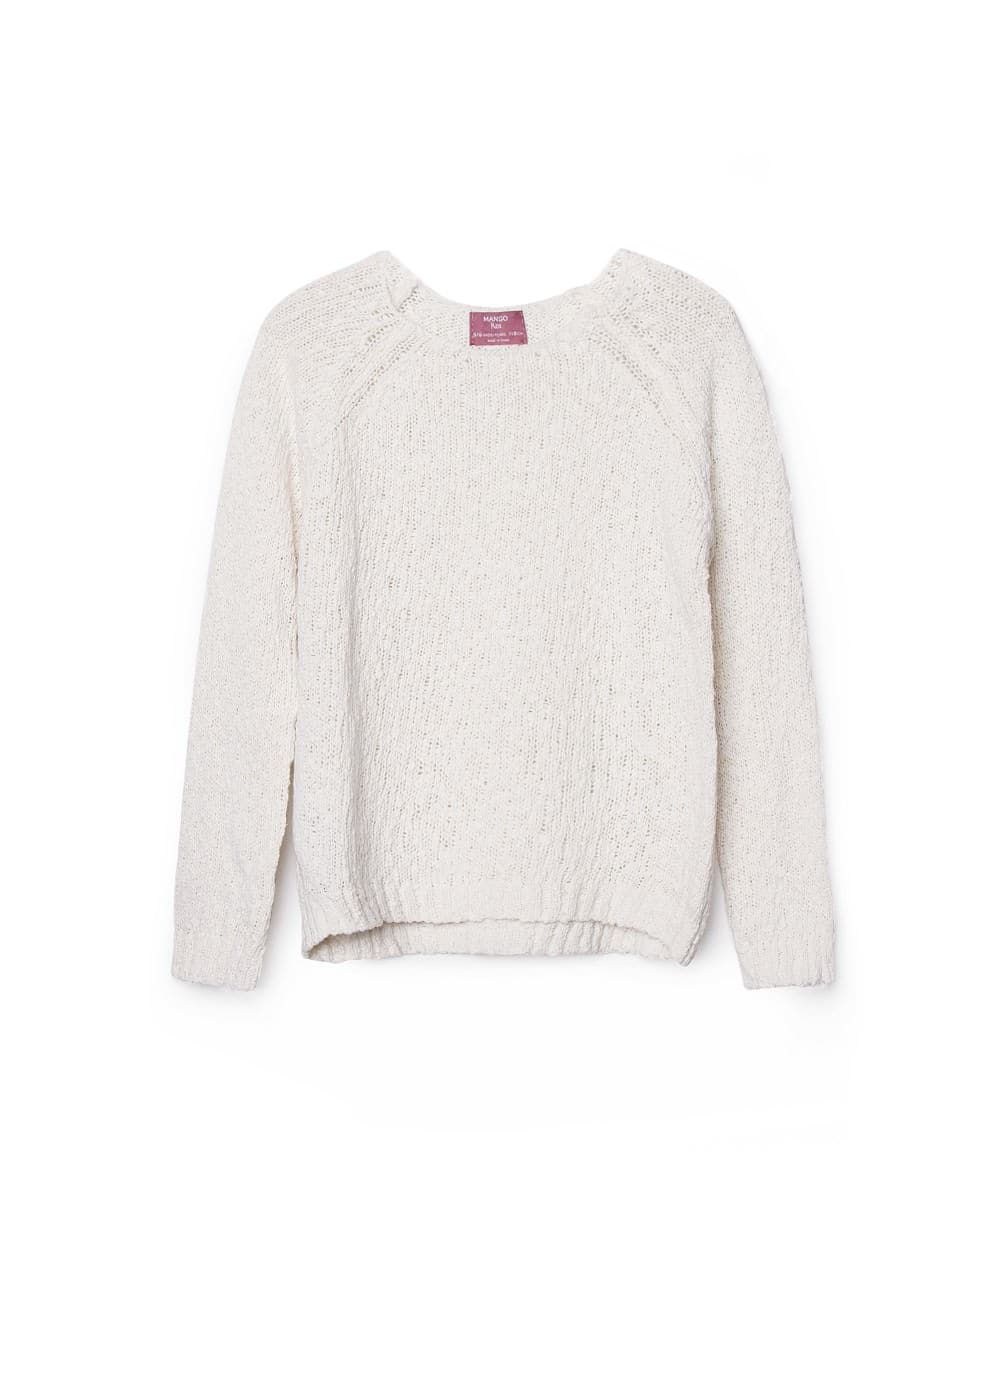 Textured cotton sweater